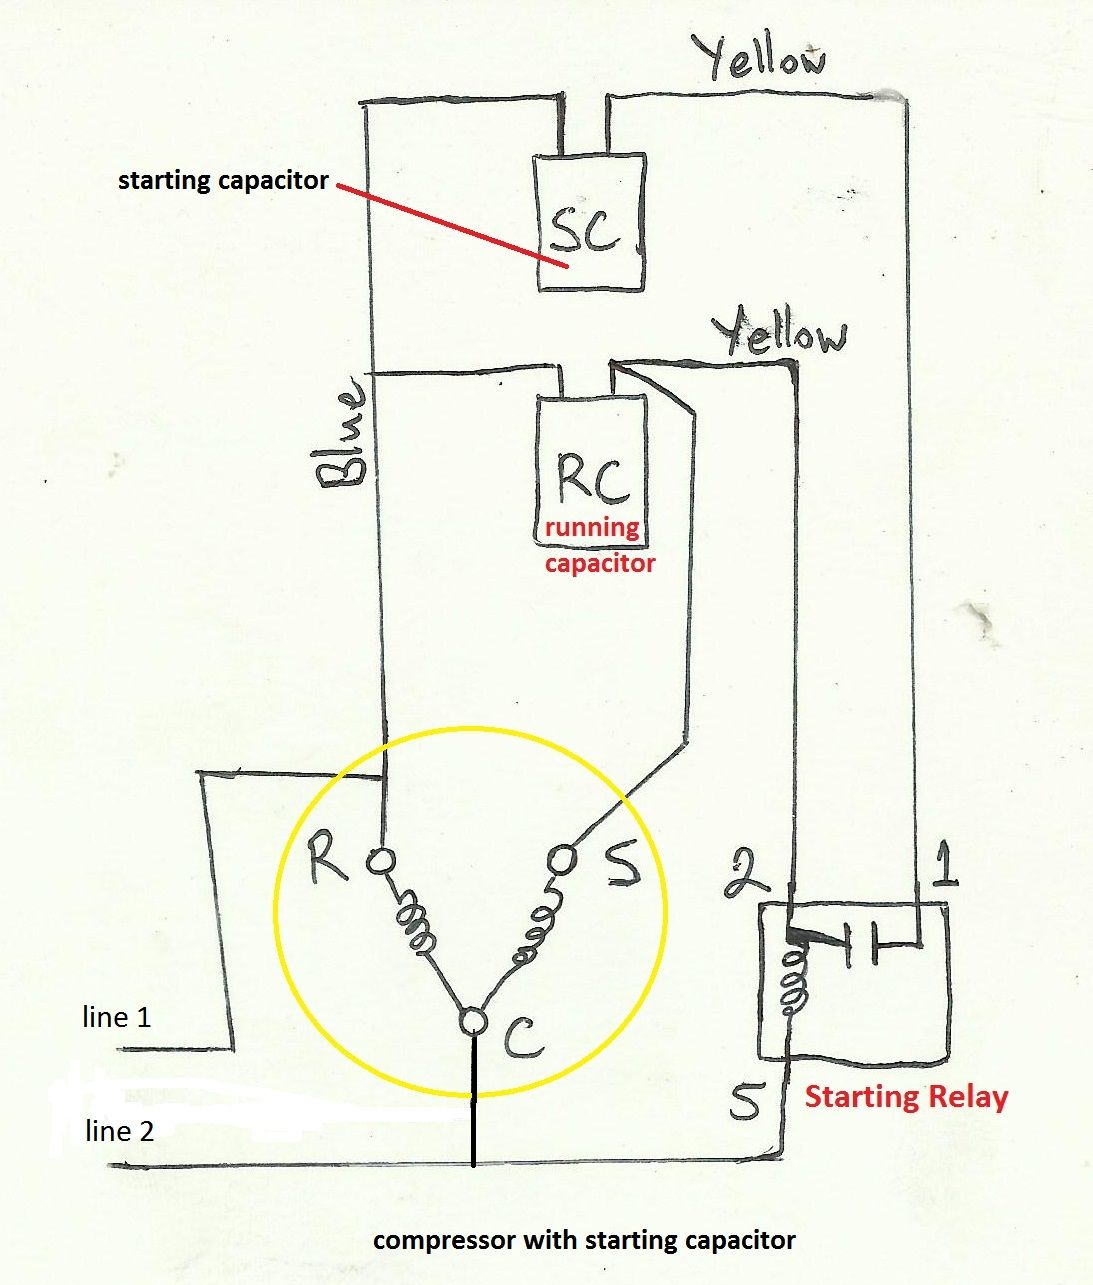 small resolution of rotary compressor wiring diagram wiring diagram load panasonic rotary compressor wiring diagram ac compressor schematic wiring